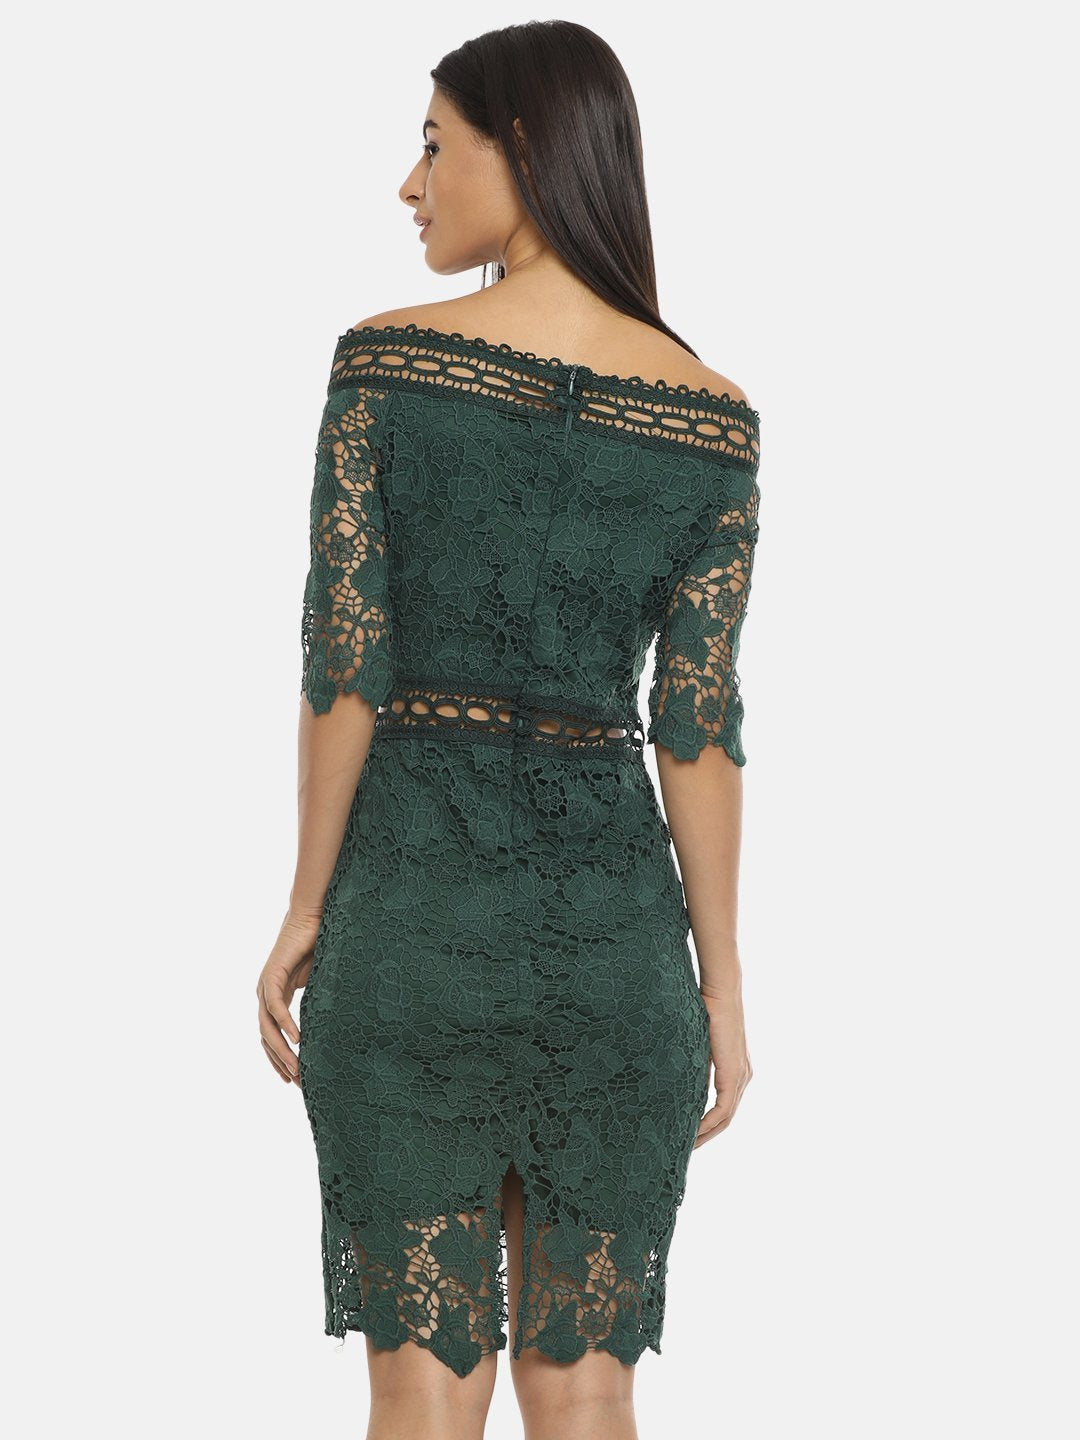 IS.U Green Off-Shoulder Dress